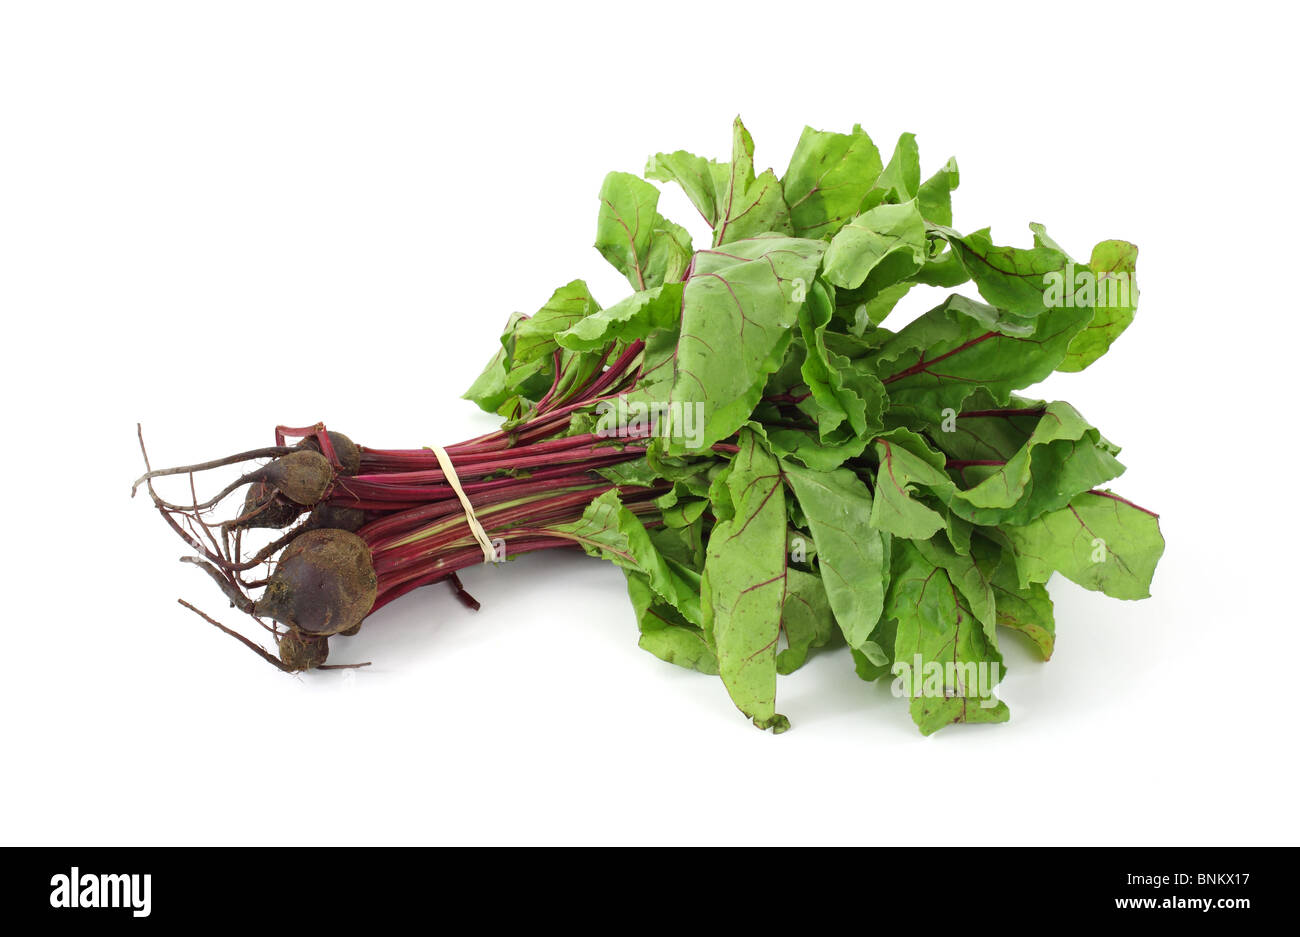 Beet greens with small beets - Stock Image